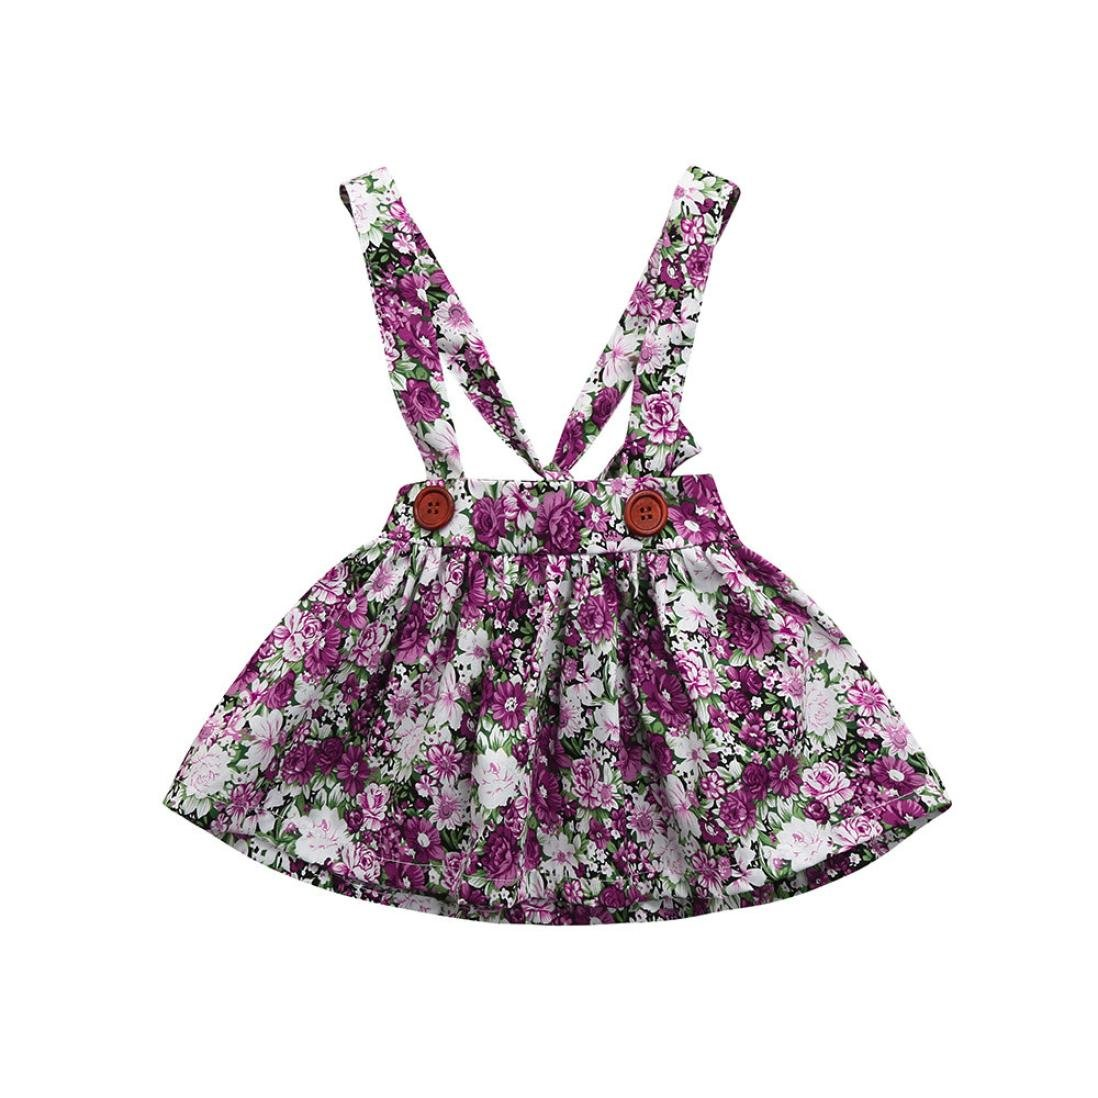 Vovotrade Newborn Baby Outfits Clothes Girls Print Straps Dress Backless Overall Skirt Cute Mini Dresses